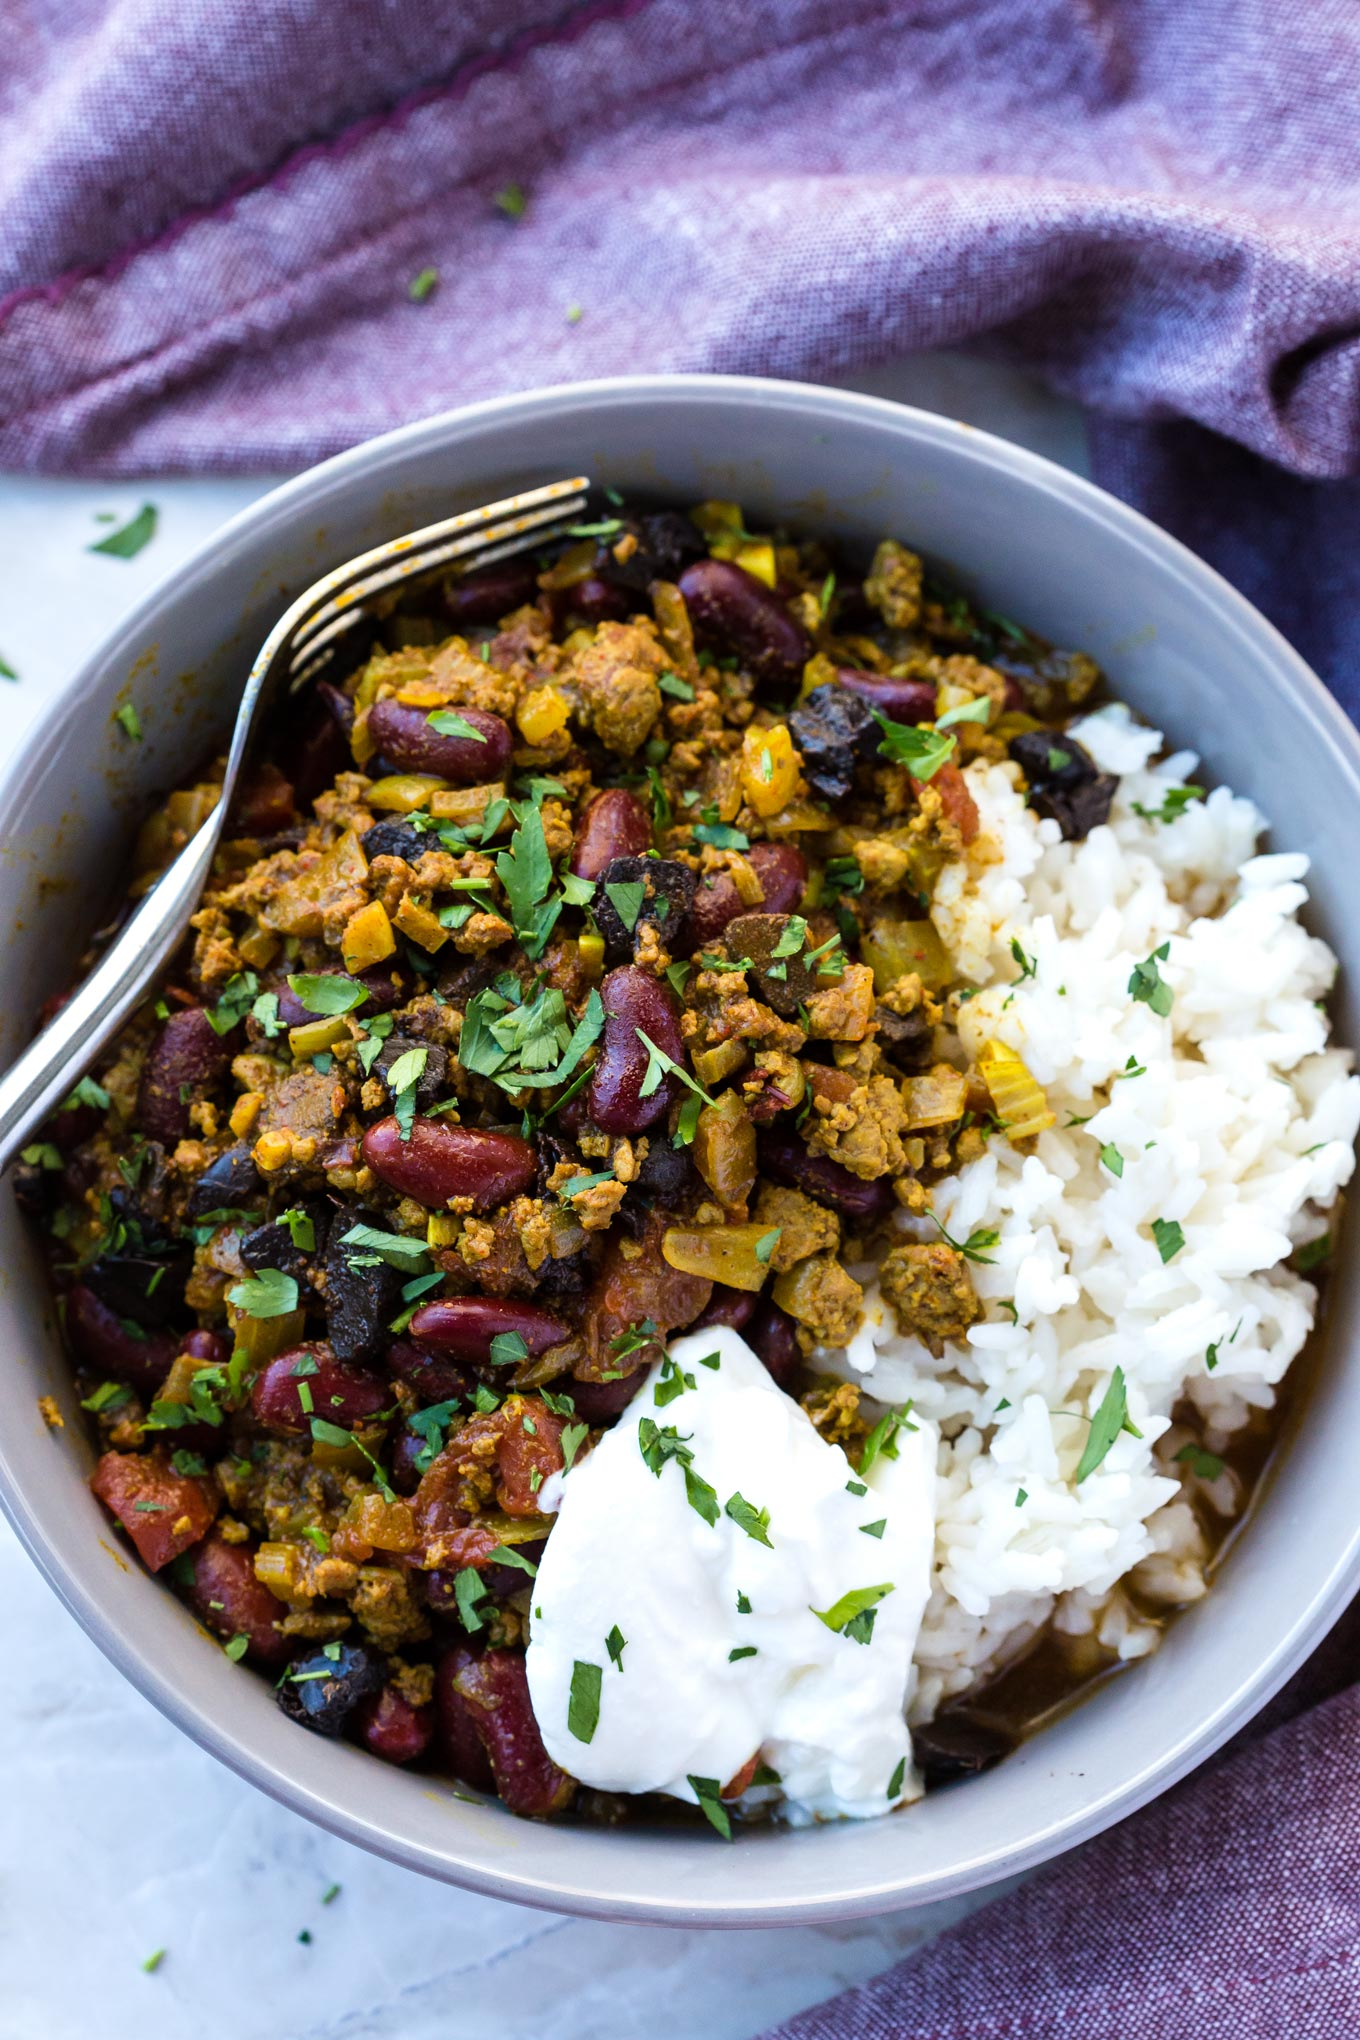 Chilli Con Carne With Beans in a serving bowl